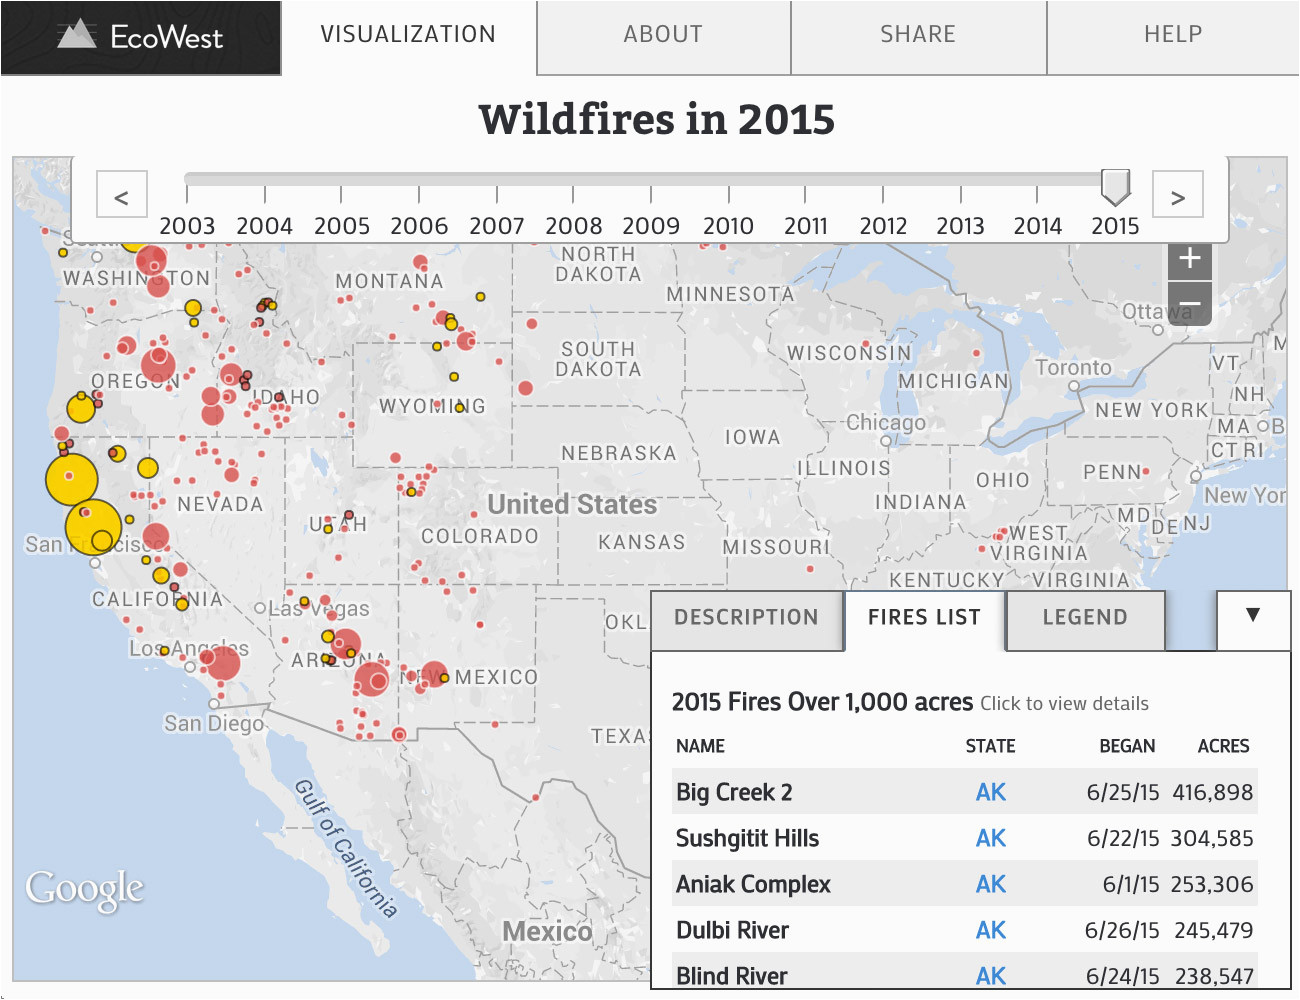 Forest Fire Map oregon Wildfires In the United States Data ... on sabine parish fire map, canada cell phone tower map, pine barrens fire map, honolulu fire map, san diego fire map, austin fire map,